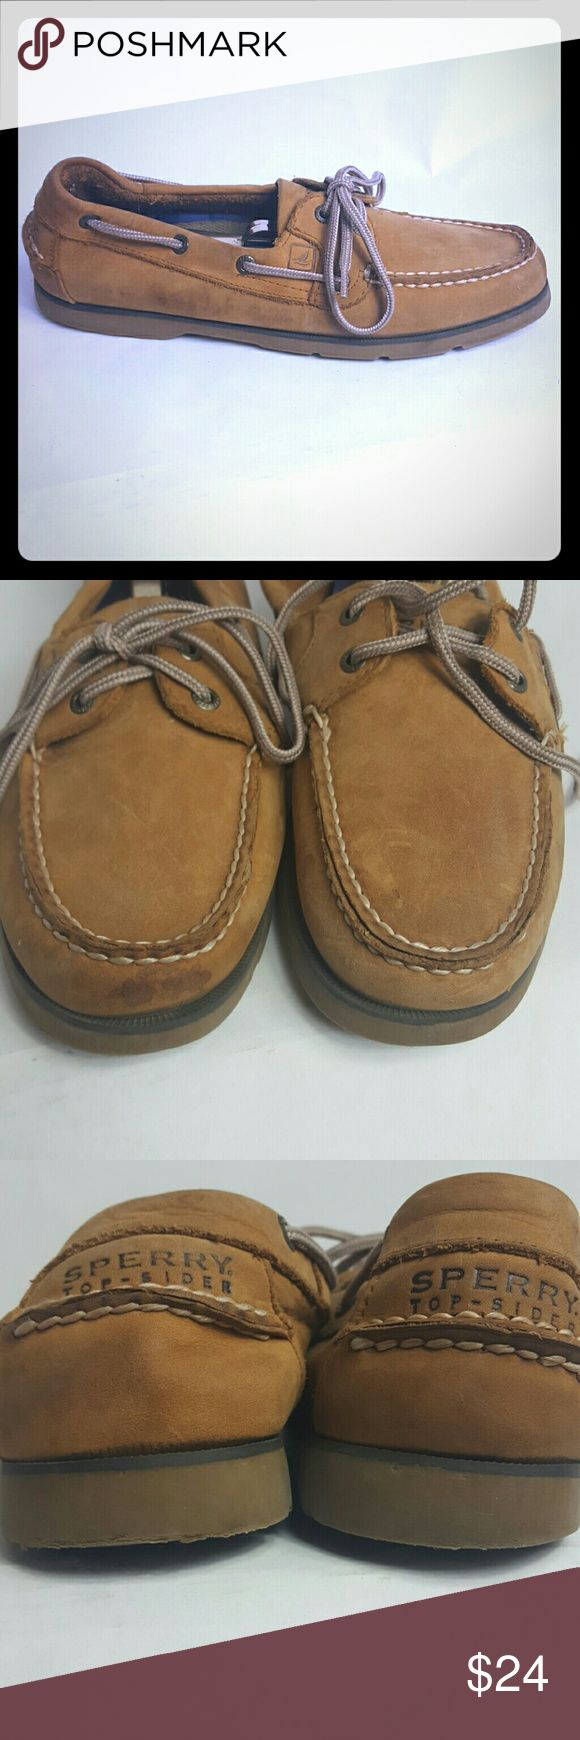 Sperry Top Sider Men size 8M Condition 8.5/10, they have some scuffs and stains from normal use, but still wearable, nothing too big and too noticeable, if you have any questions or you want to request more pictures, don't hesitate to ask me . Thanks for your time. Sperry Top-Sider Shoes Loafers & Slip-Ons